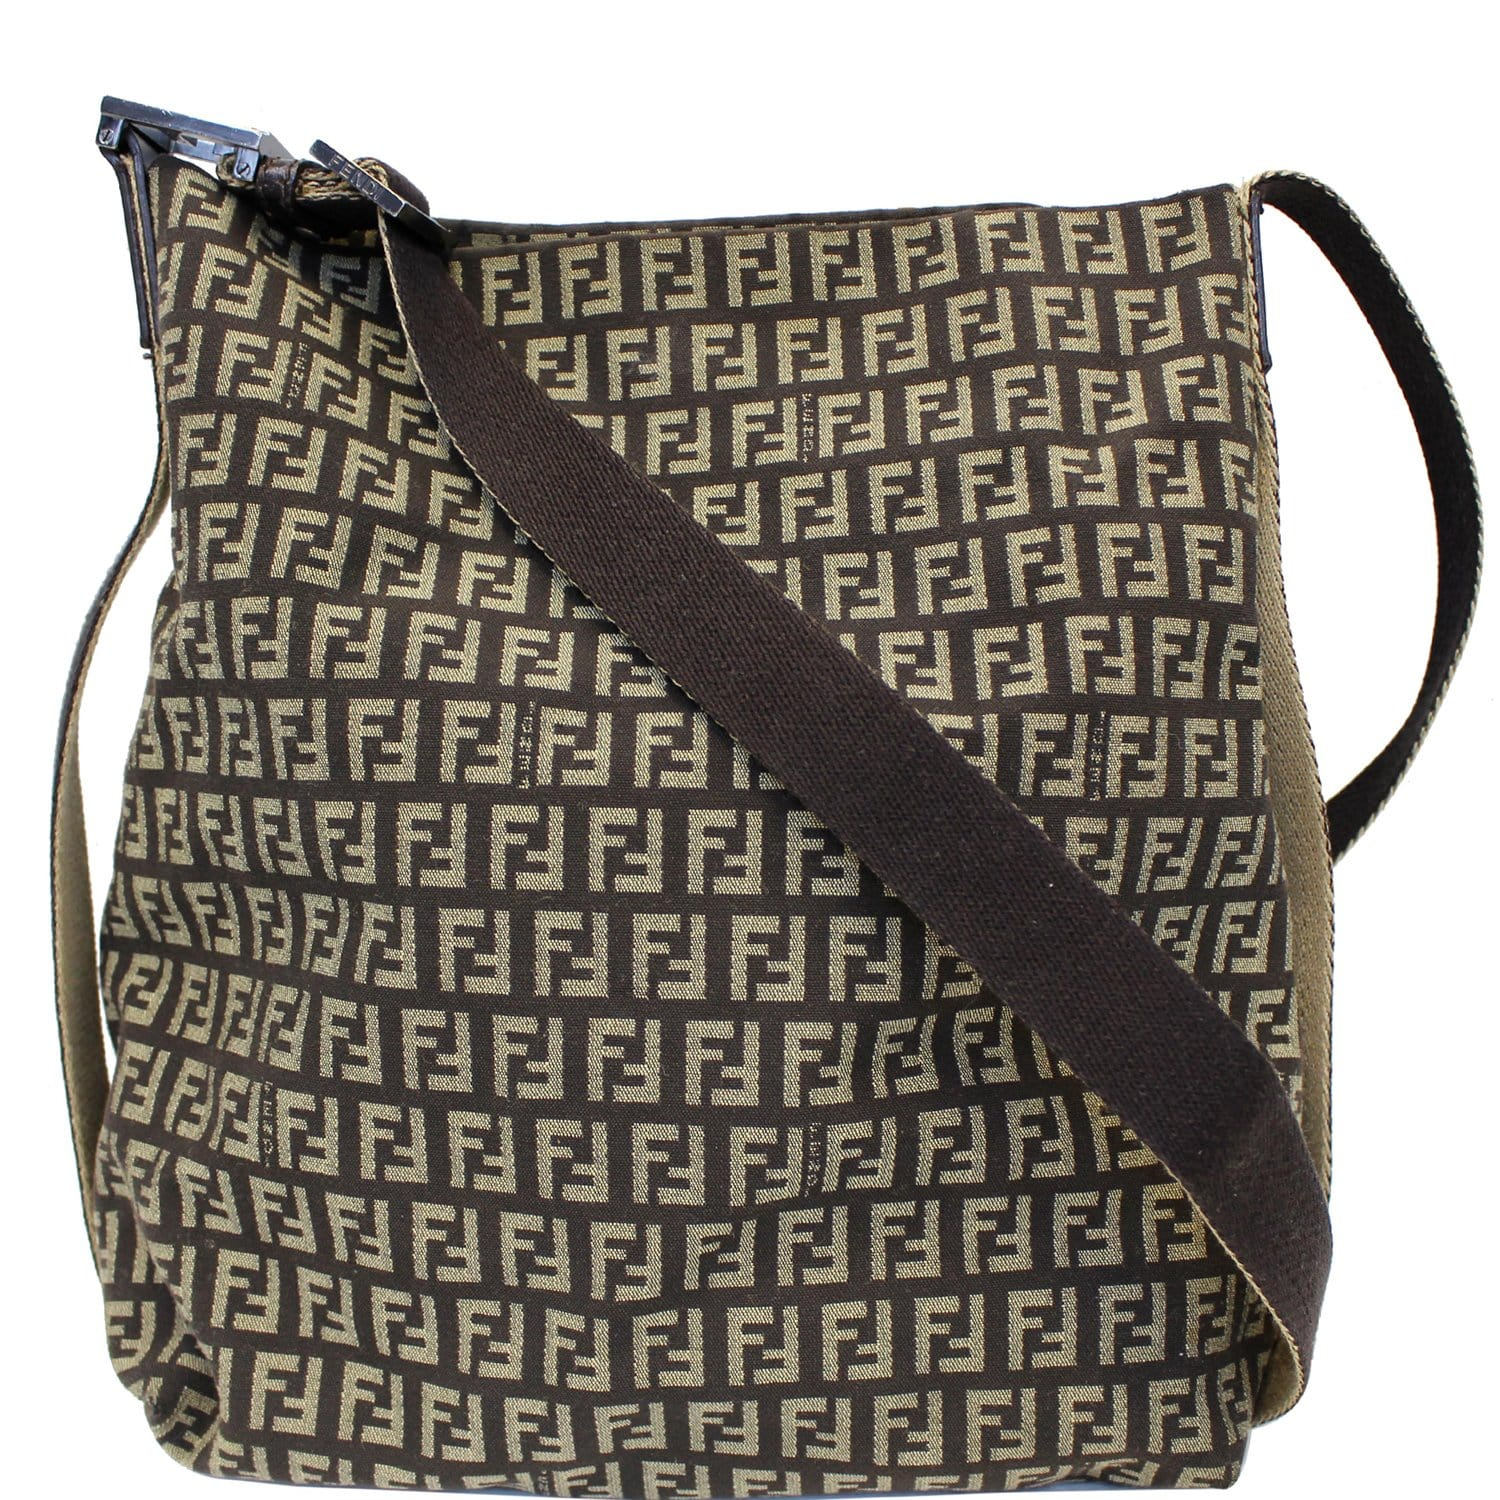 fff241de7d97f FENDI Zucchino Canvas Crossbody Bag Brown-US